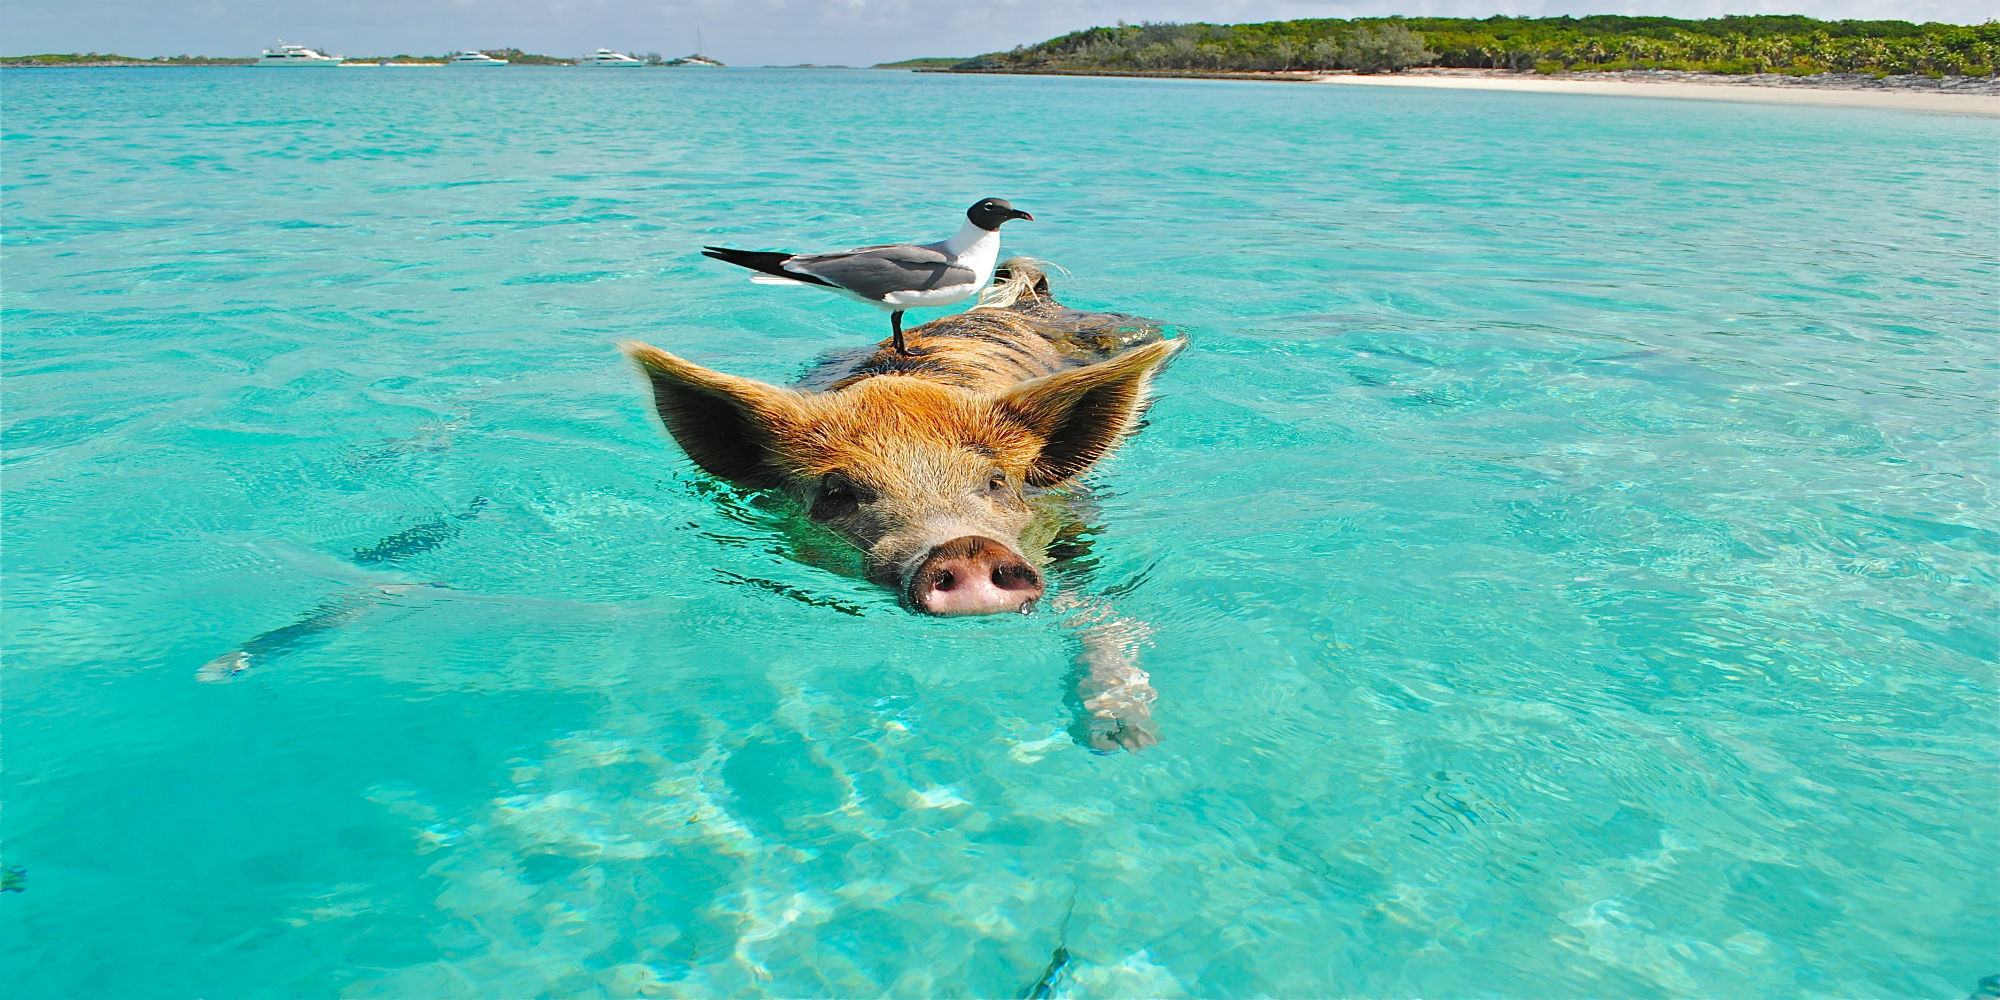 staniel-cay-swimming-pig-seagull-fish-66258_edit